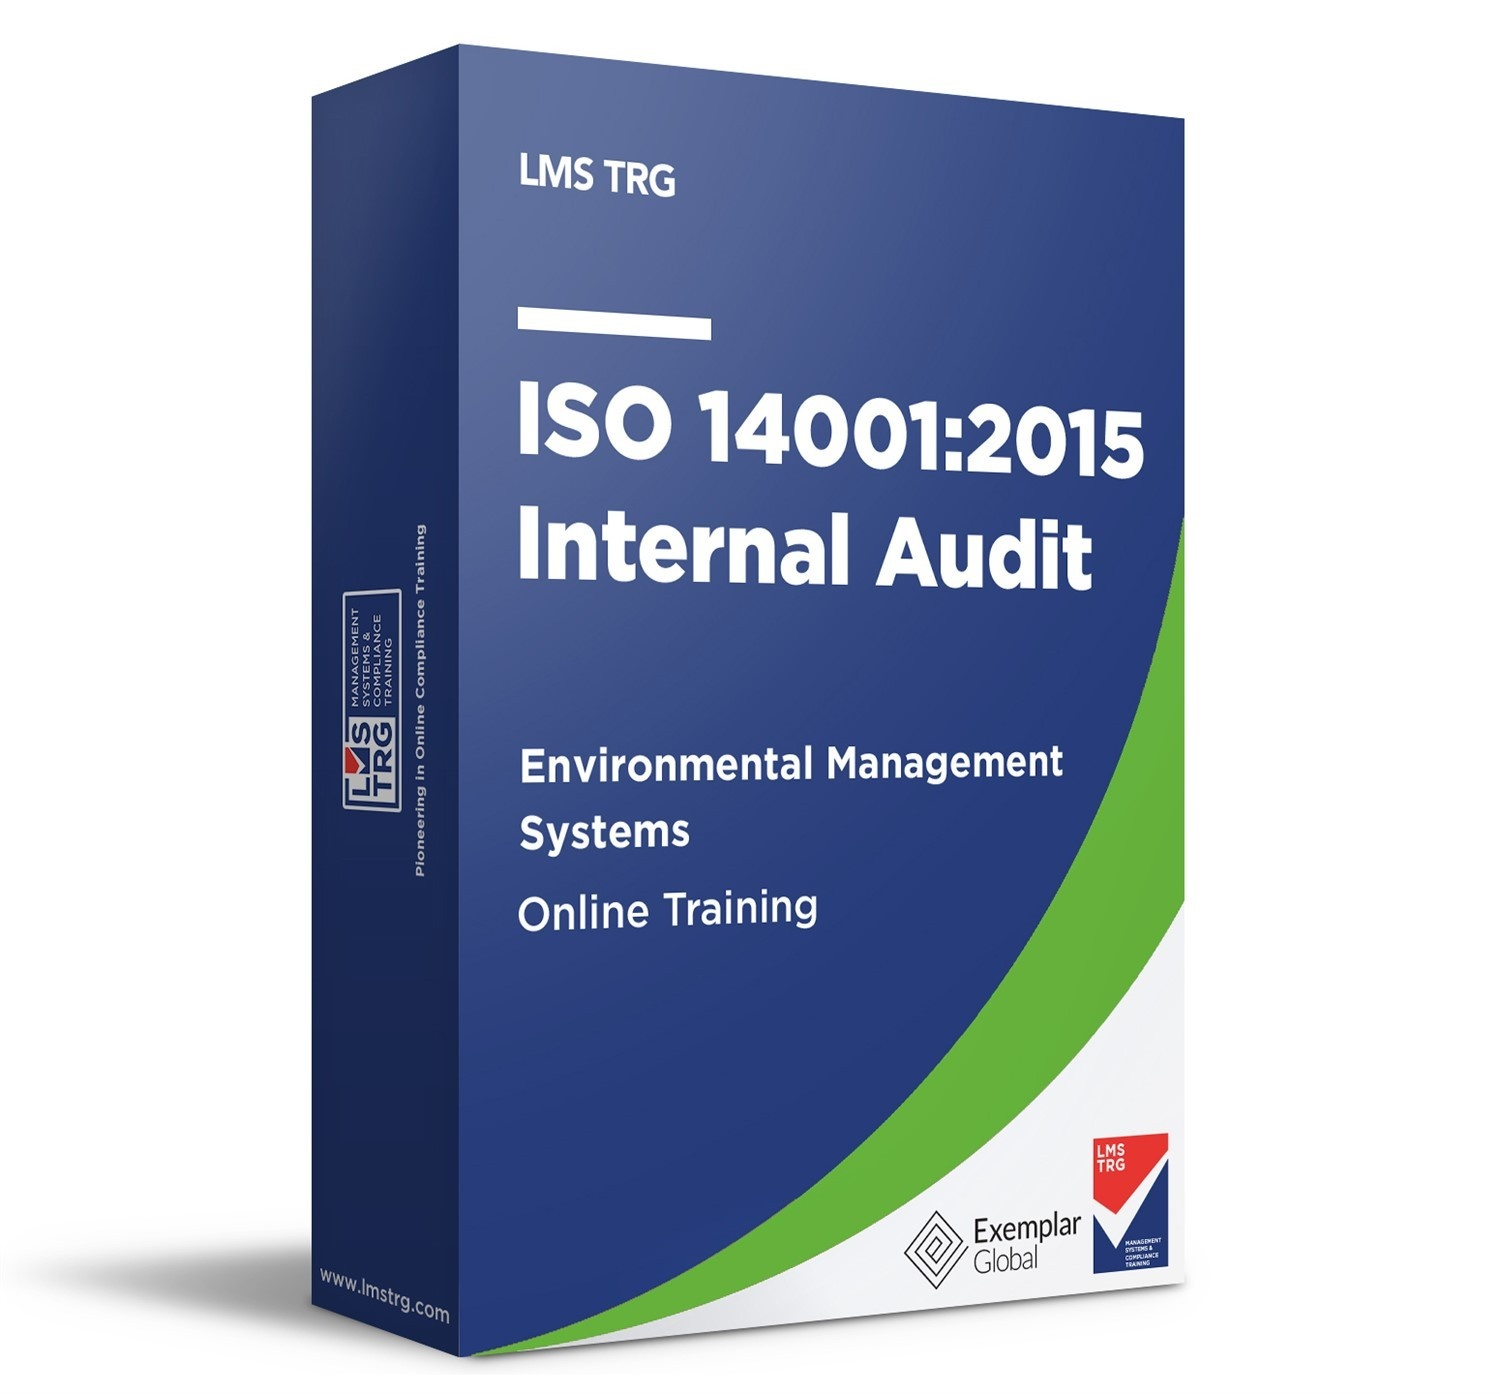 ISO 14001 Environmental Management Systems (EMS) Internal Auditor ISO Online Training